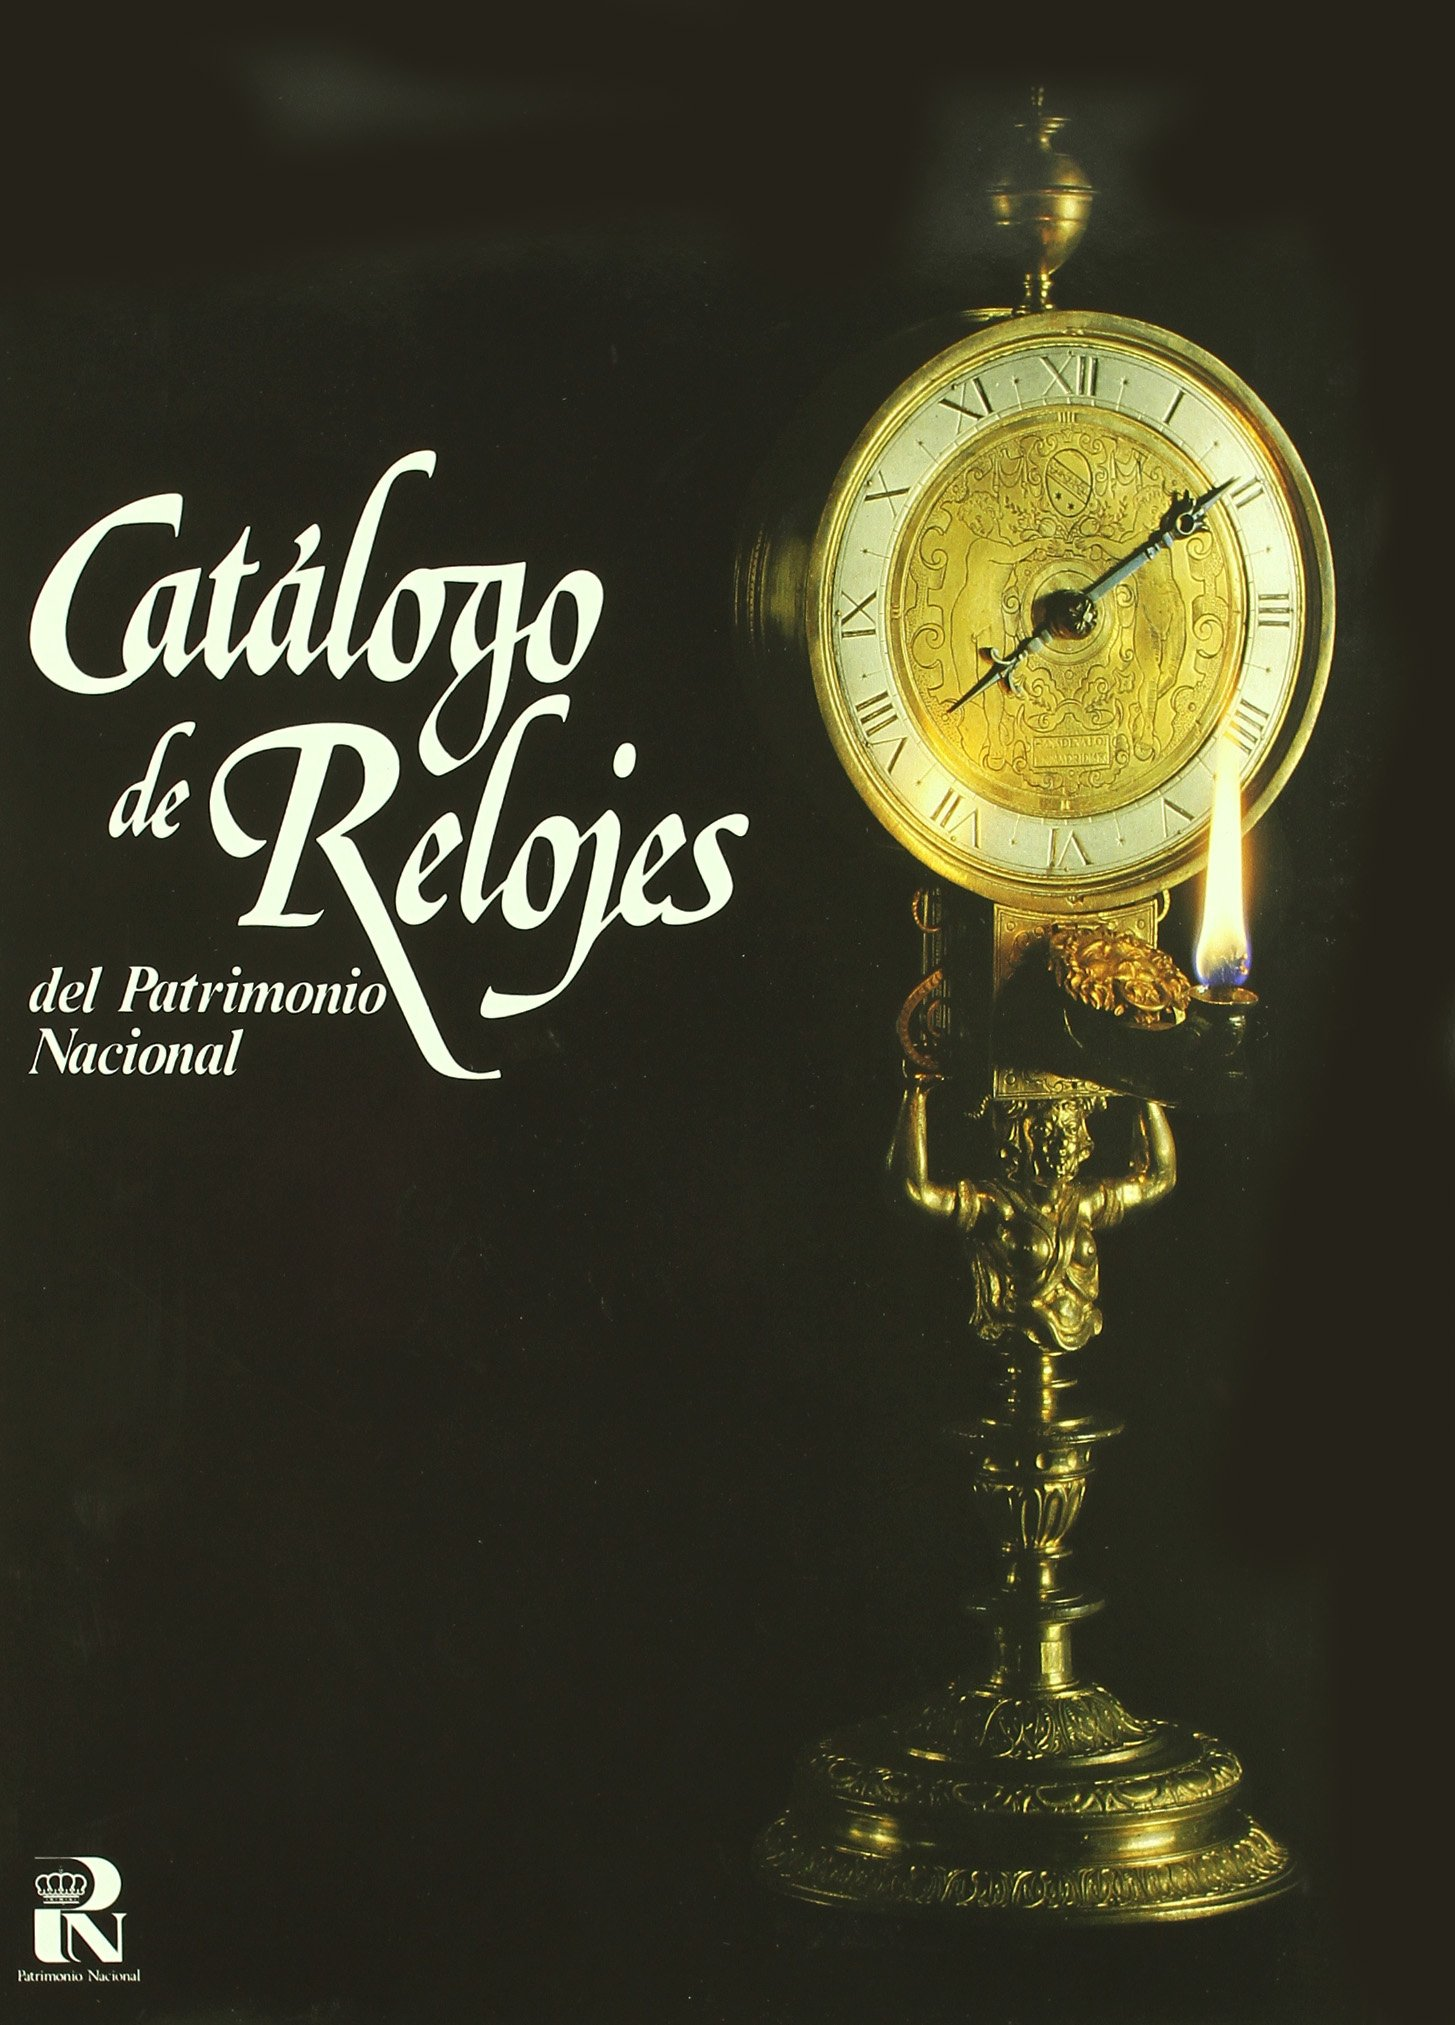 Catalogo de Relojes del Patrimonio Nacional (Spanish Edition): J. Ramon Colon de Caravajal: 9788450568448: Amazon.com: Books